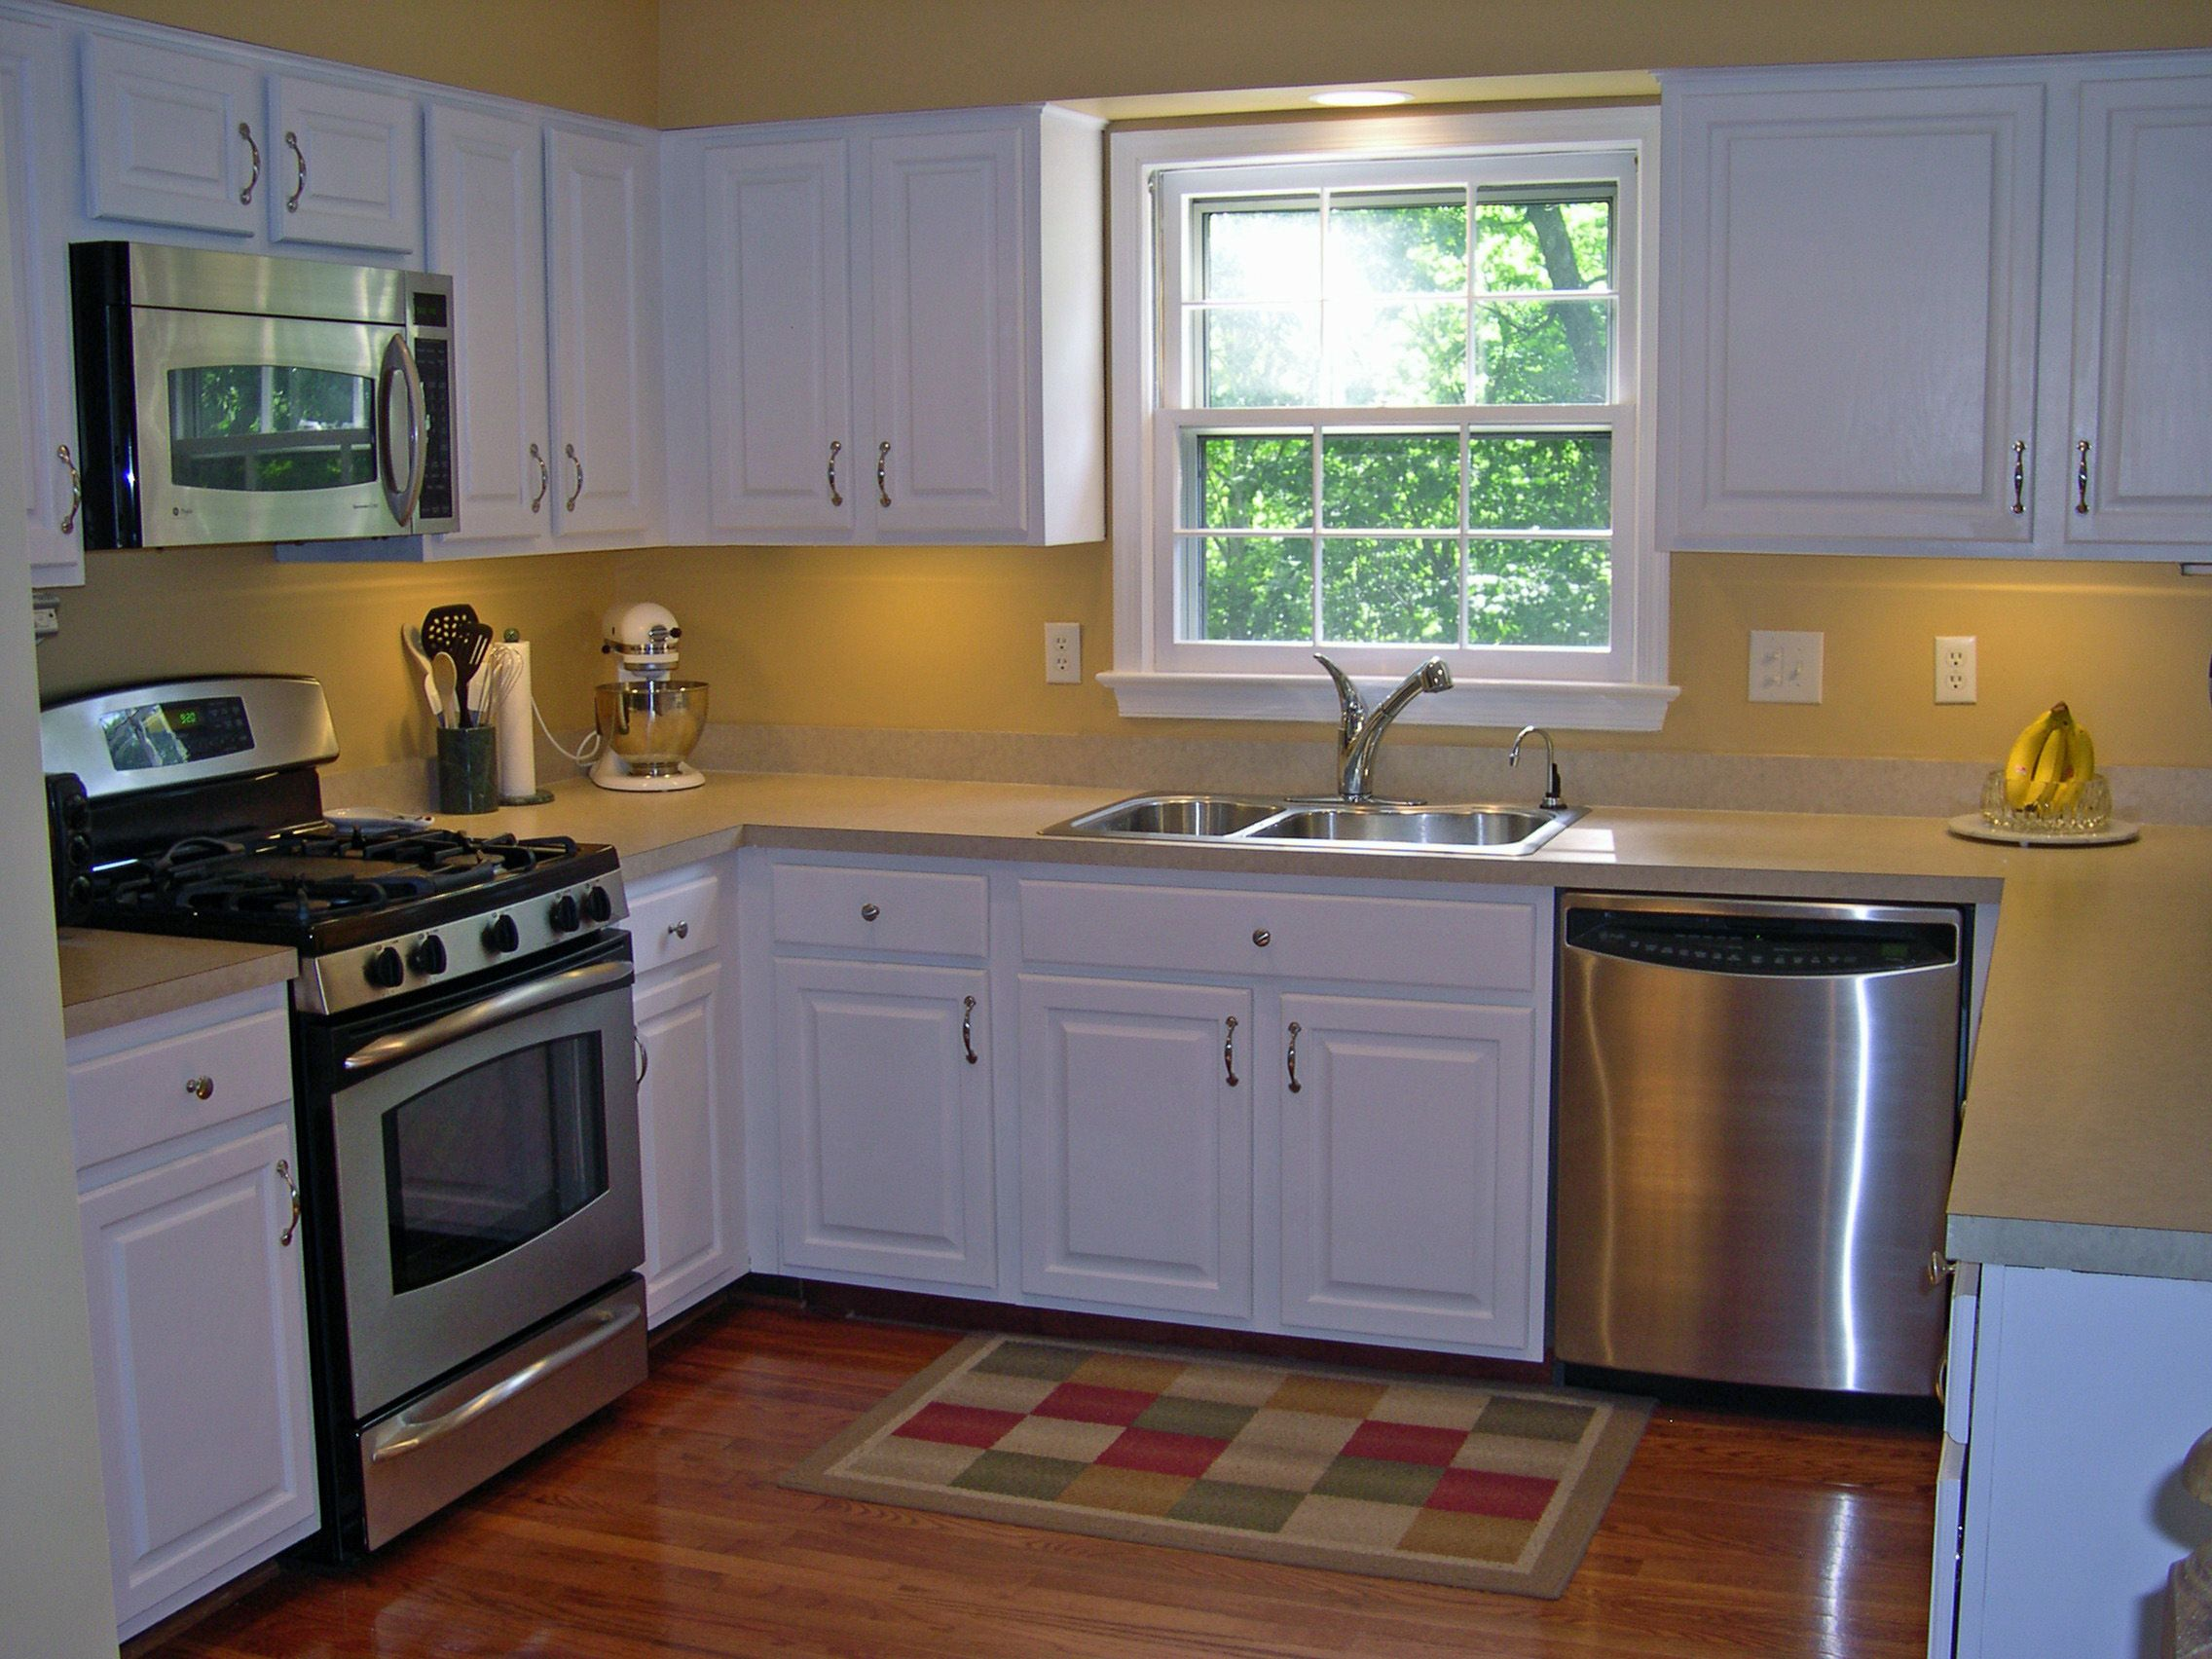 Remodeling A Small Kitchen Small Kitchen Remodeling Ideas  Small Kitchen Remodel Ideas